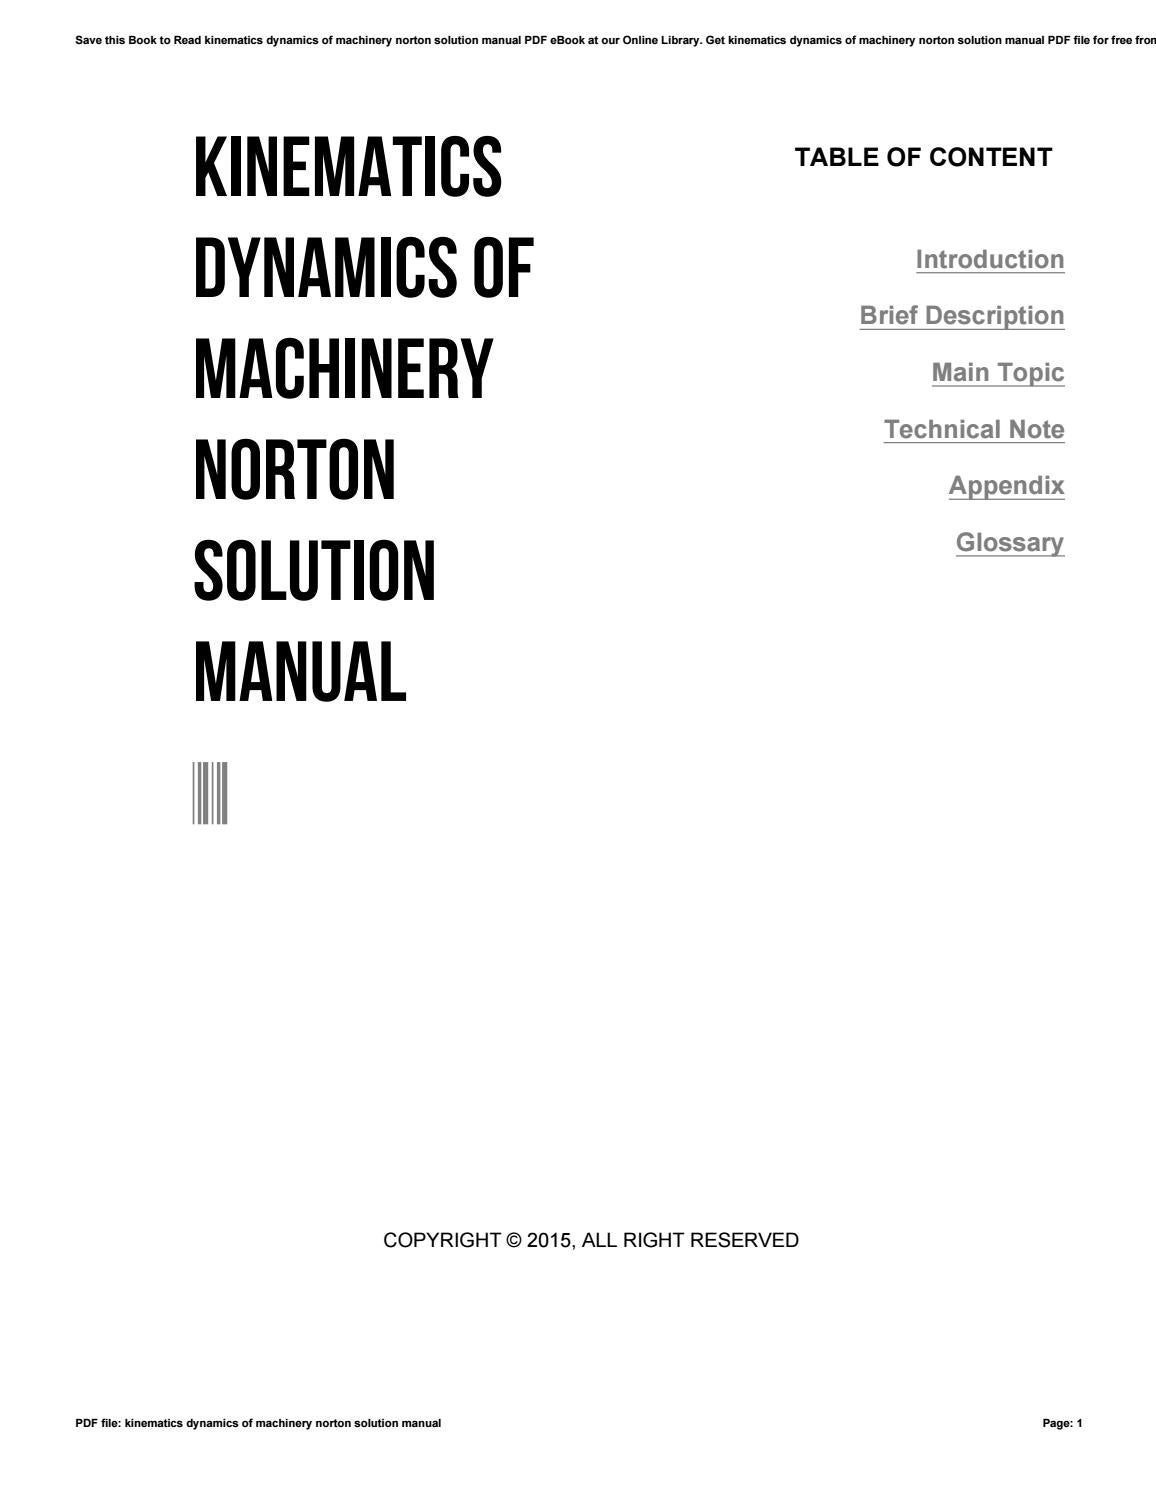 Kinematics dynamics of machinery norton solution manual by